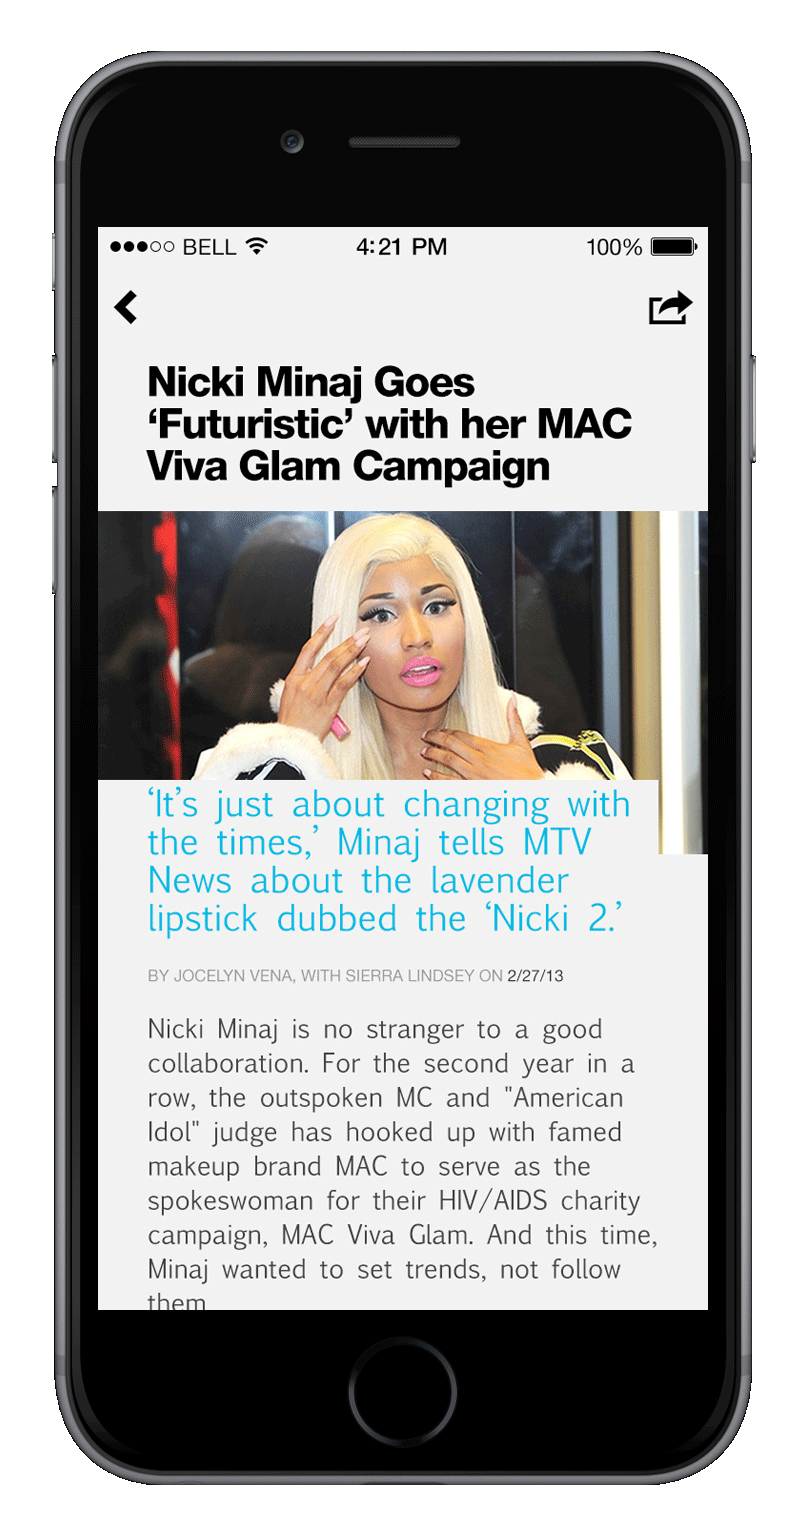 mtv-news-phone-screens-05.png